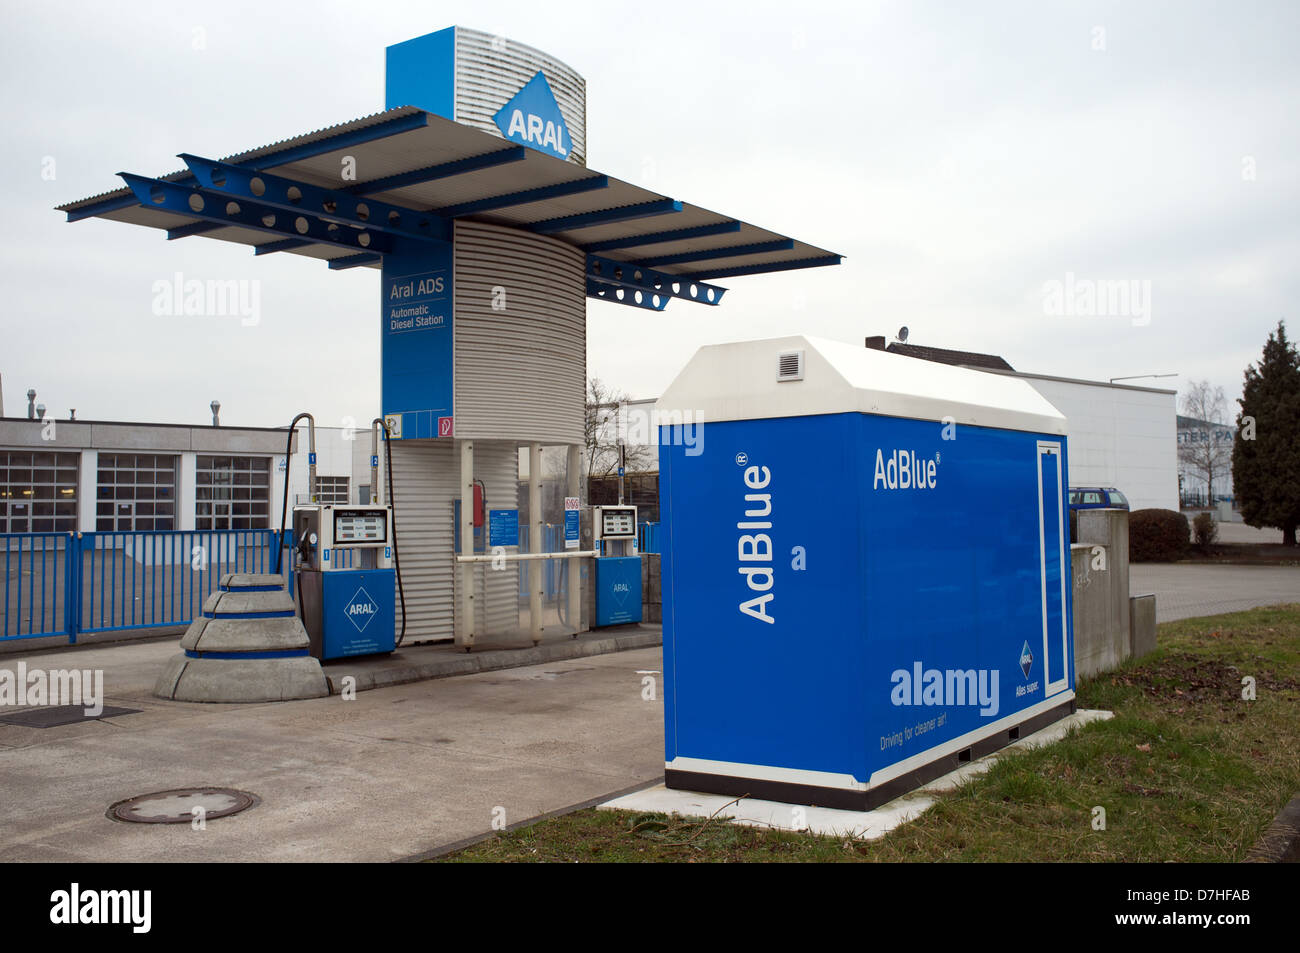 Aral ADS (Automatic Diesel Station) Cologne Germany - Stock Image